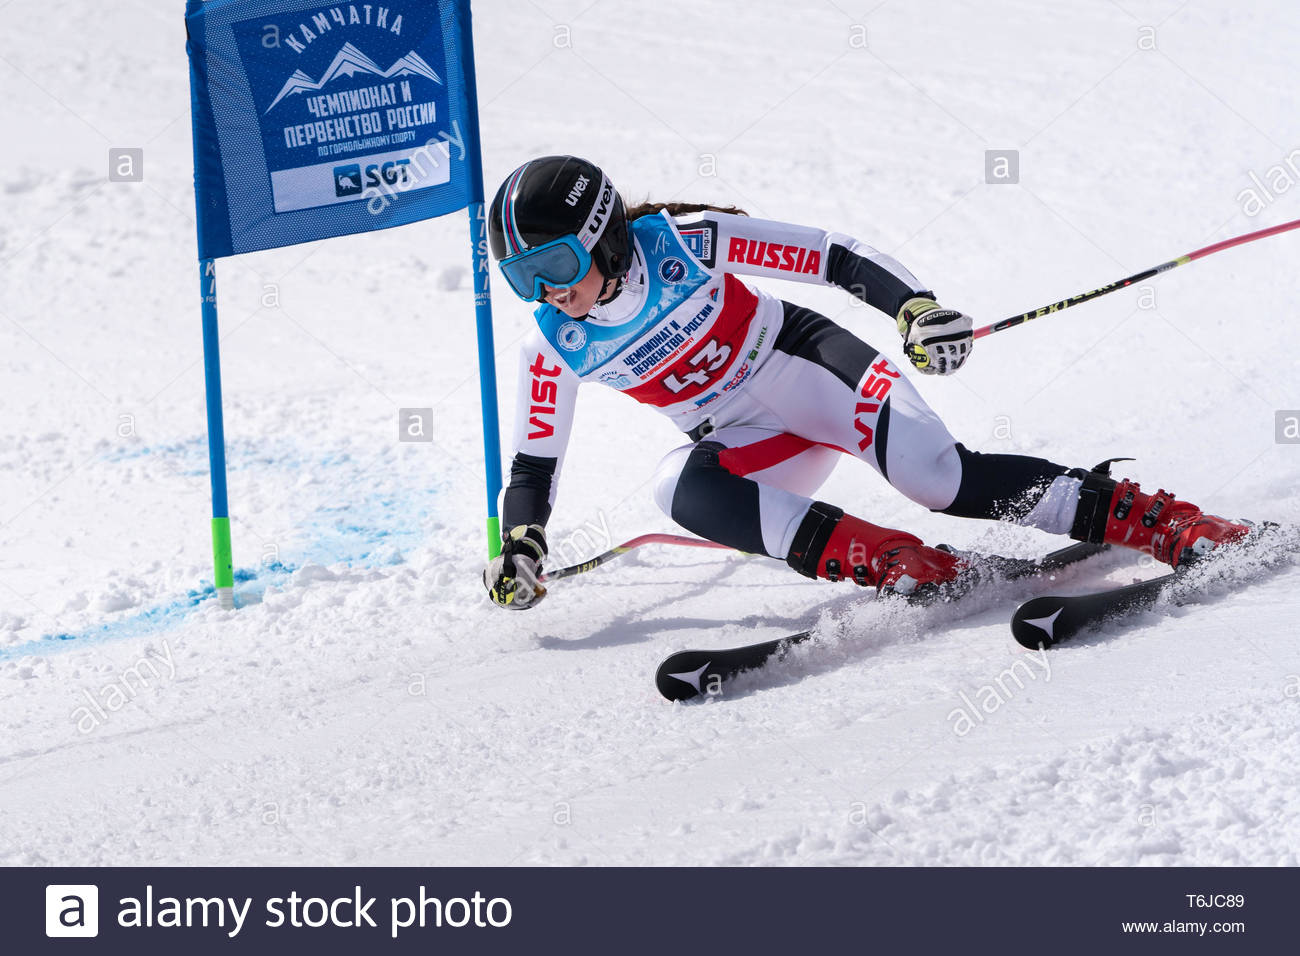 KAMCHATKA PENINSULA, RUSSIAN FEDERATION - APRIL 1, 2019: Mountain skier Dyachenko Ellina (Sakhalin Region) skiing down snowy mountain slope. Russian W - Stock Image